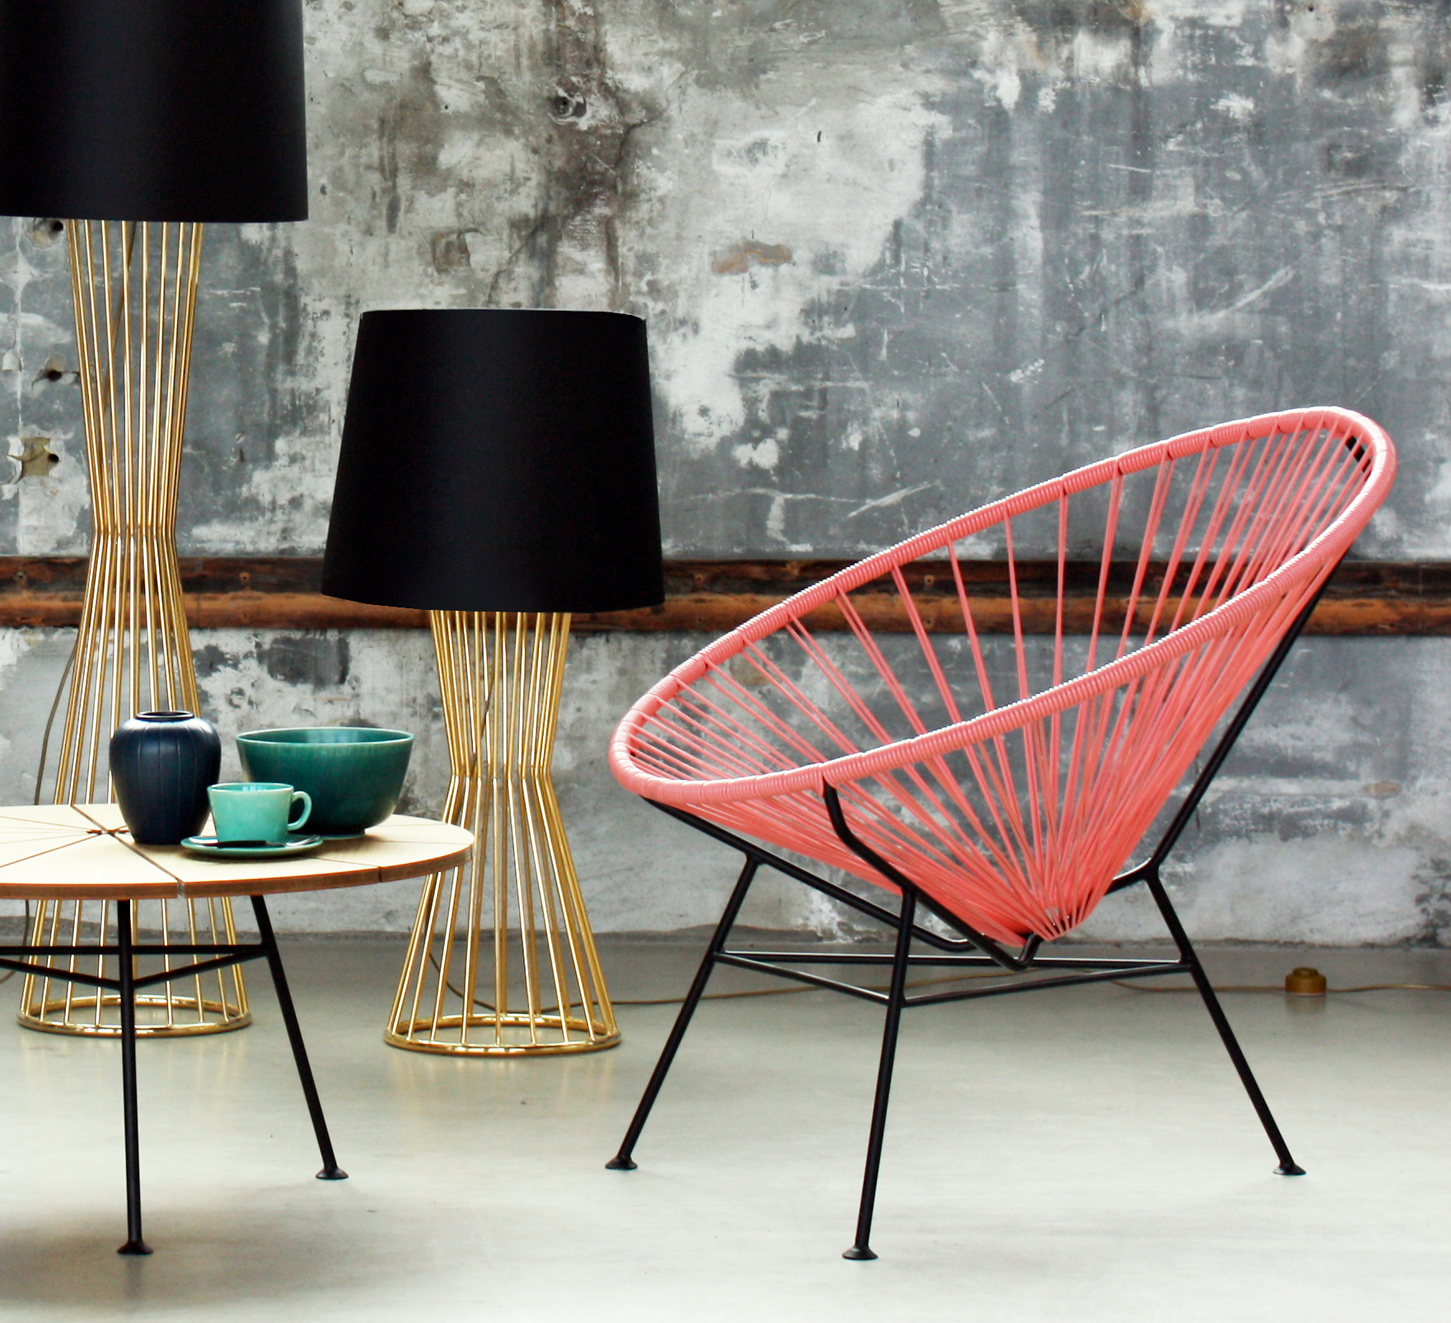 Acapulco Chair 0 Gravity Chairs Marzo Silla The Deco Soul